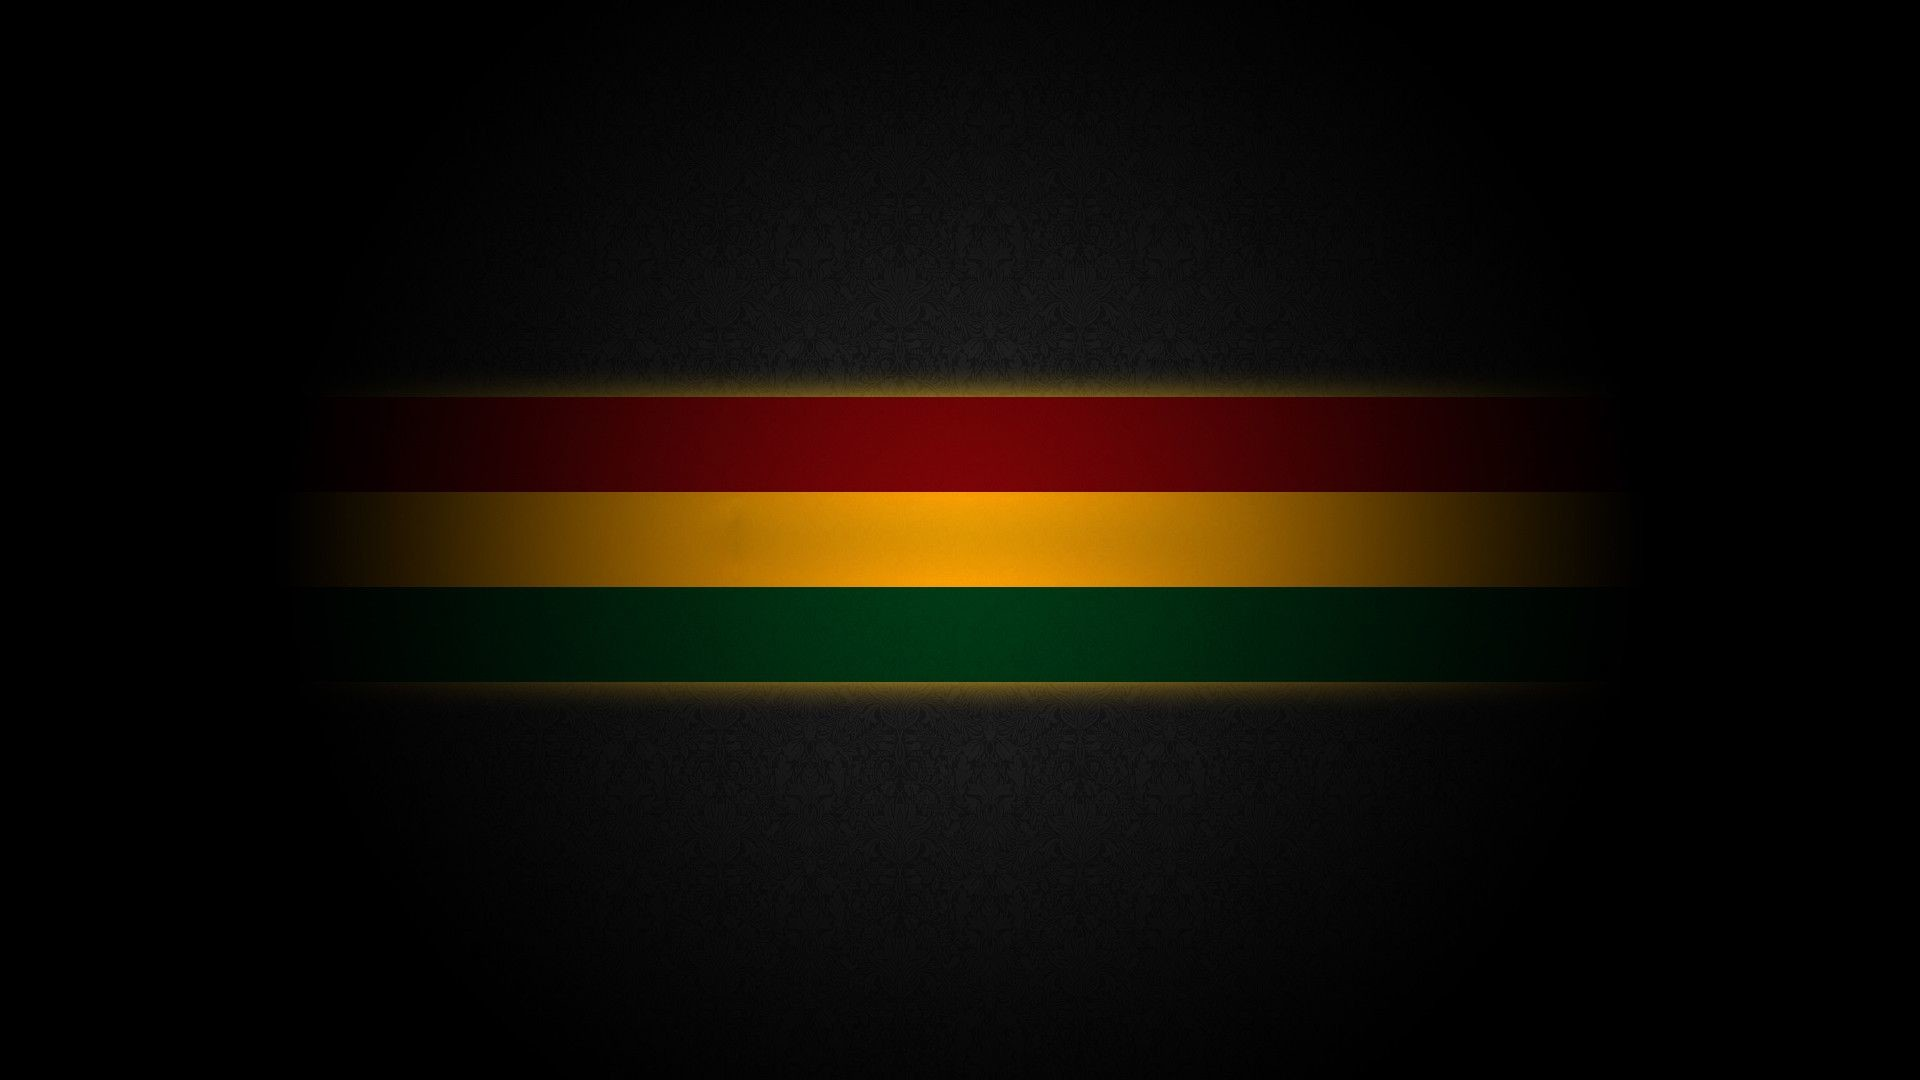 1920x1080 Flag HD Wallpapers Backgrounds Wallpaper 1024×768 Rasta Flag Wallpapers (31  Wallpapers) |